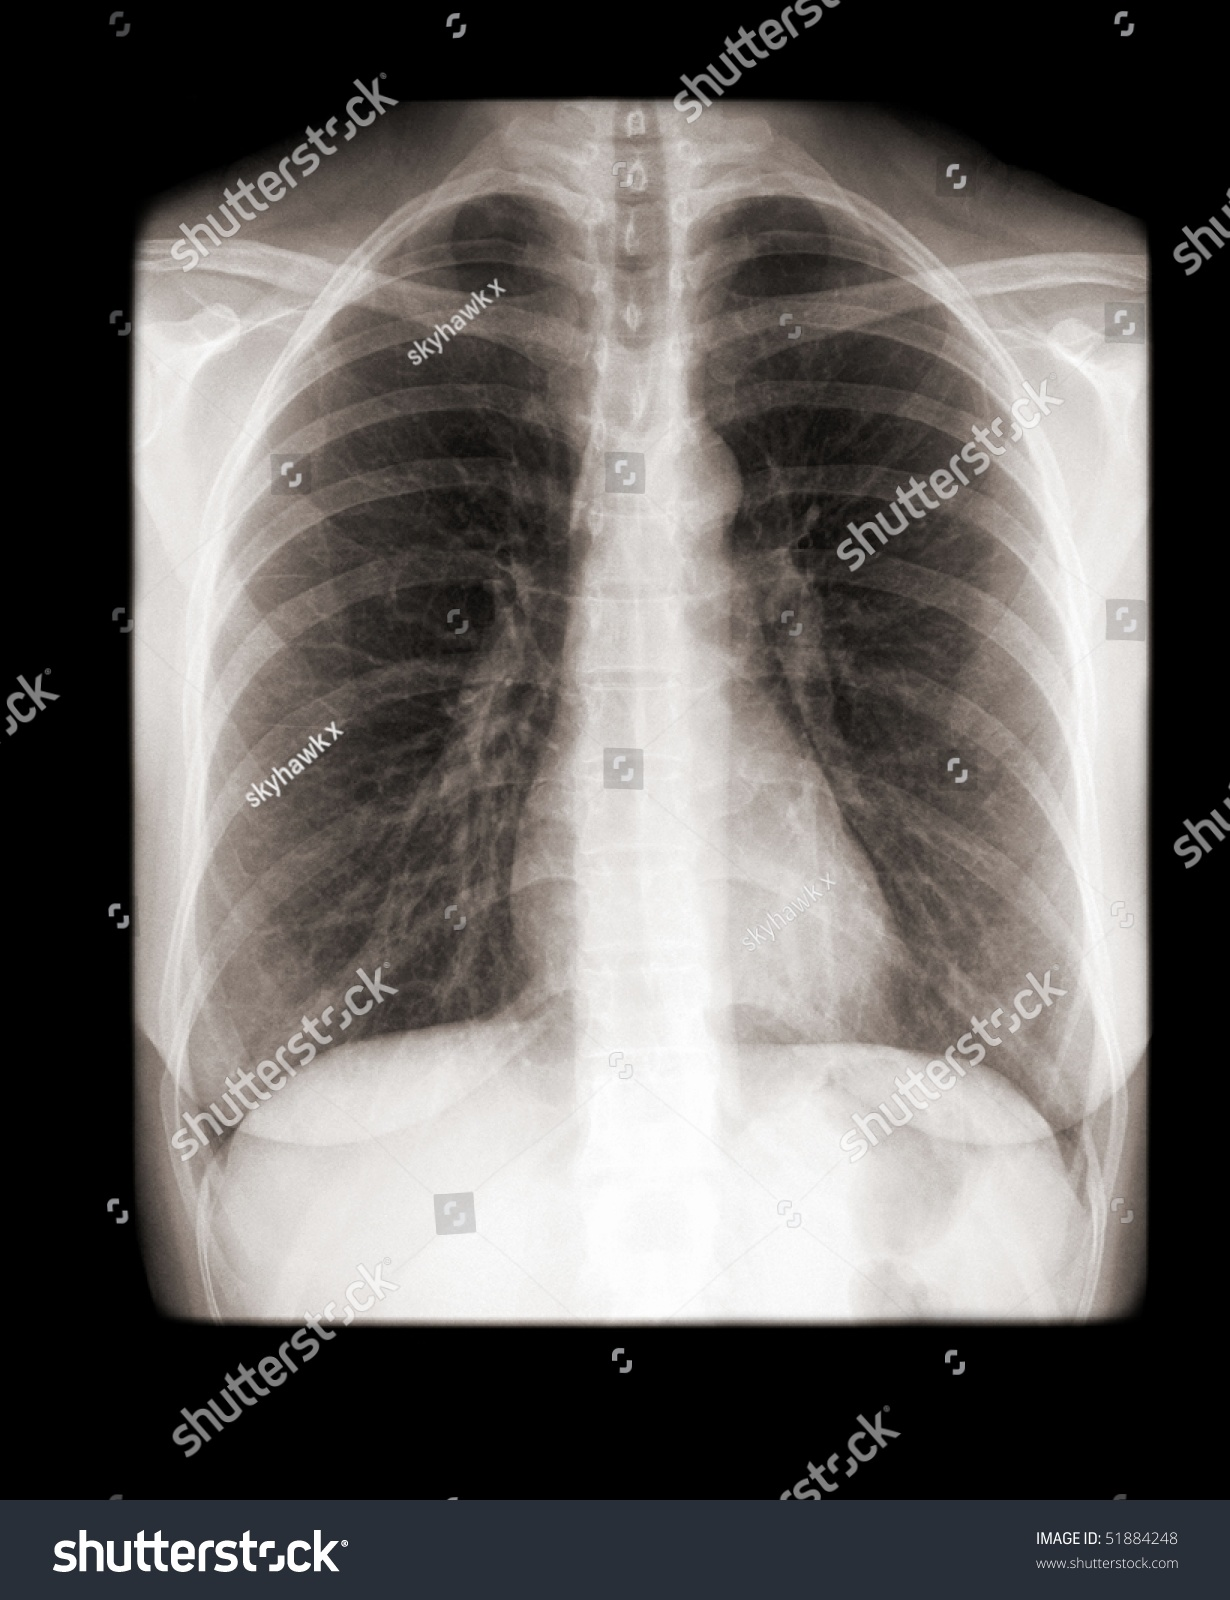 Human Chest Normal Lungs On Xray Stock Photo 51884248 ...